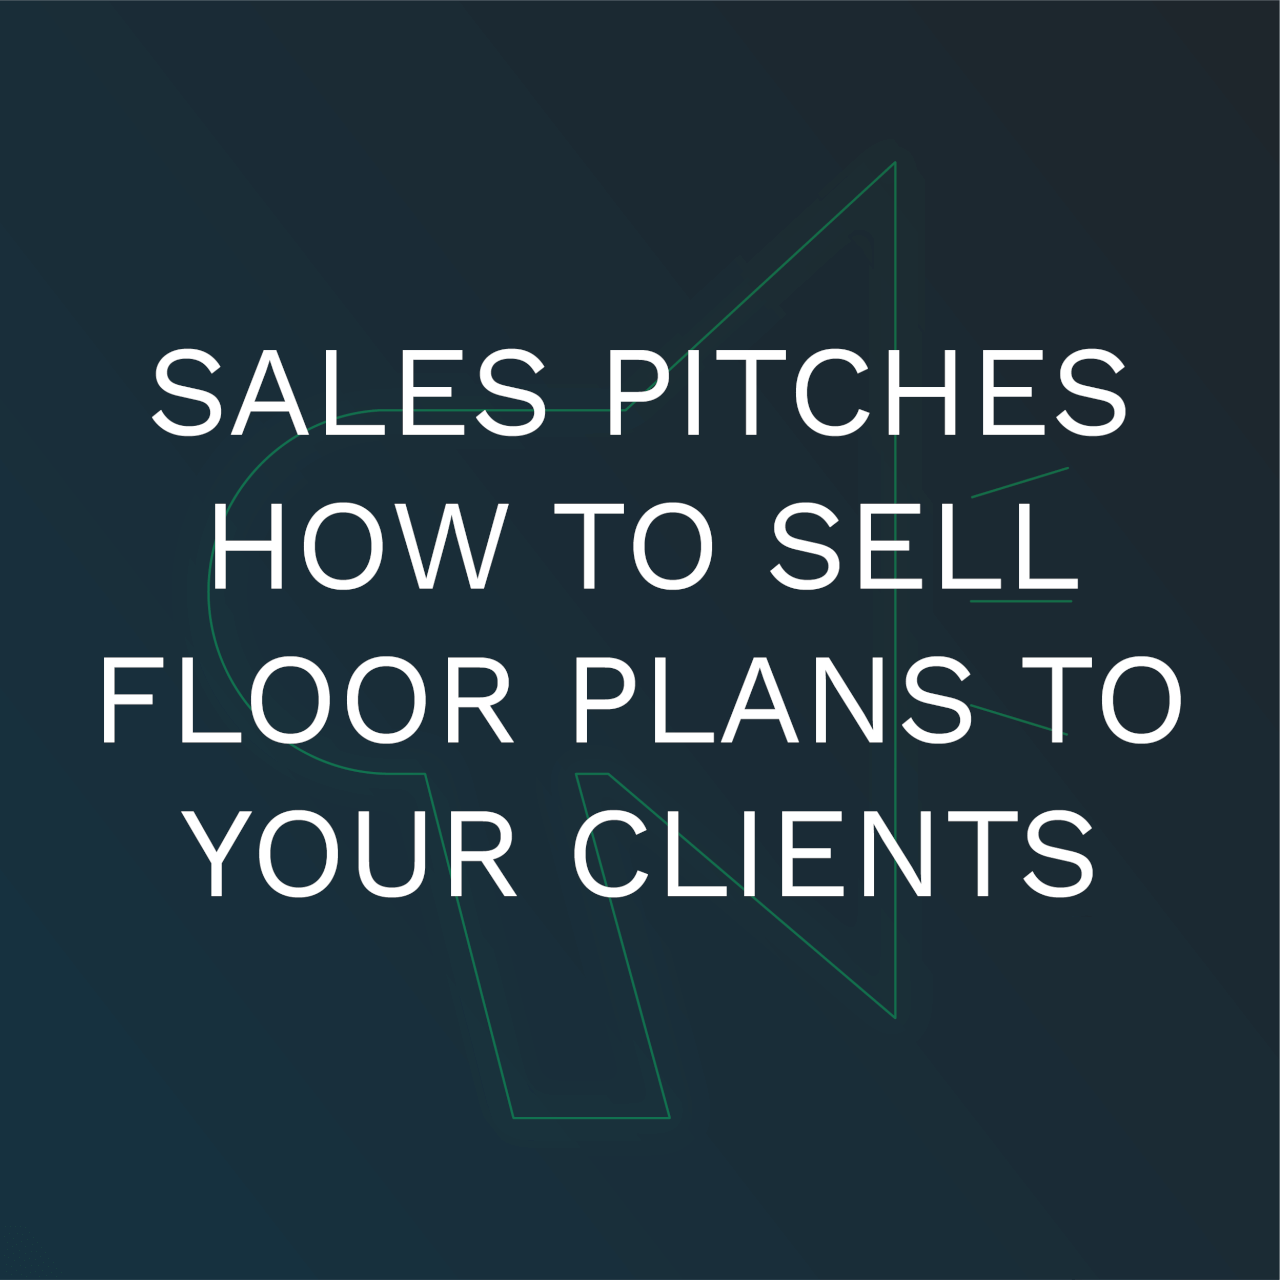 sales pitches to sell floor plans